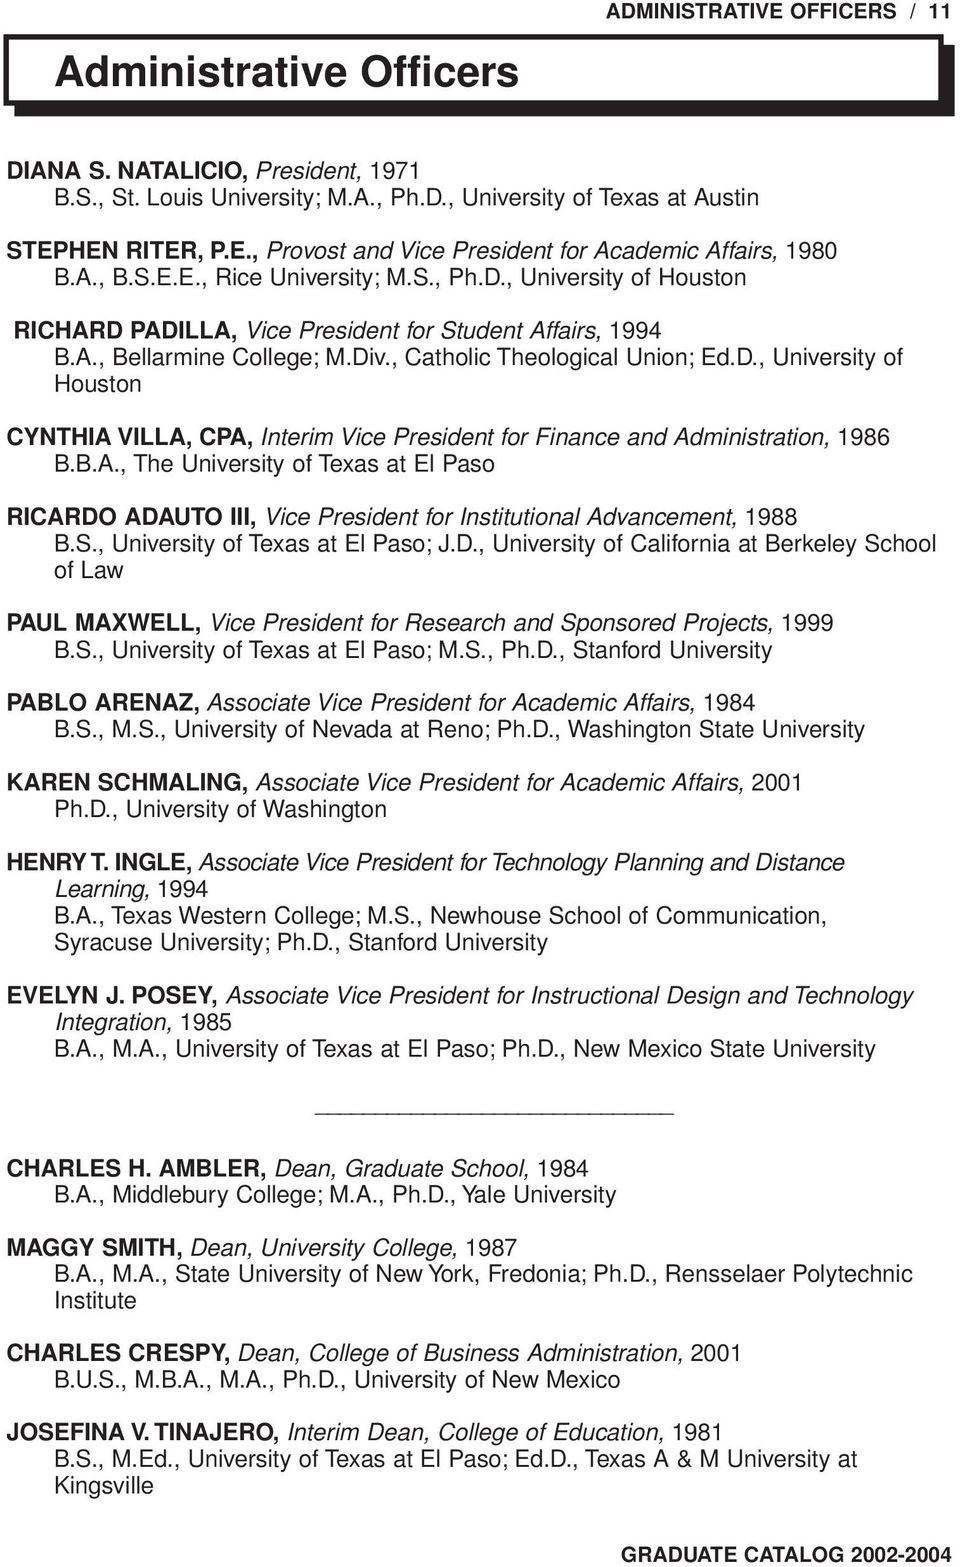 B.A., The University of Texas at El Paso RICARDO ADAUTO III, Vice President for Institutional Advancement, 1988 B.S., University of Texas at El Paso; J.D., University of California at Berkeley School of Law PAUL MAXWELL, Vice President for Research and Sponsored Projects, 1999 B.